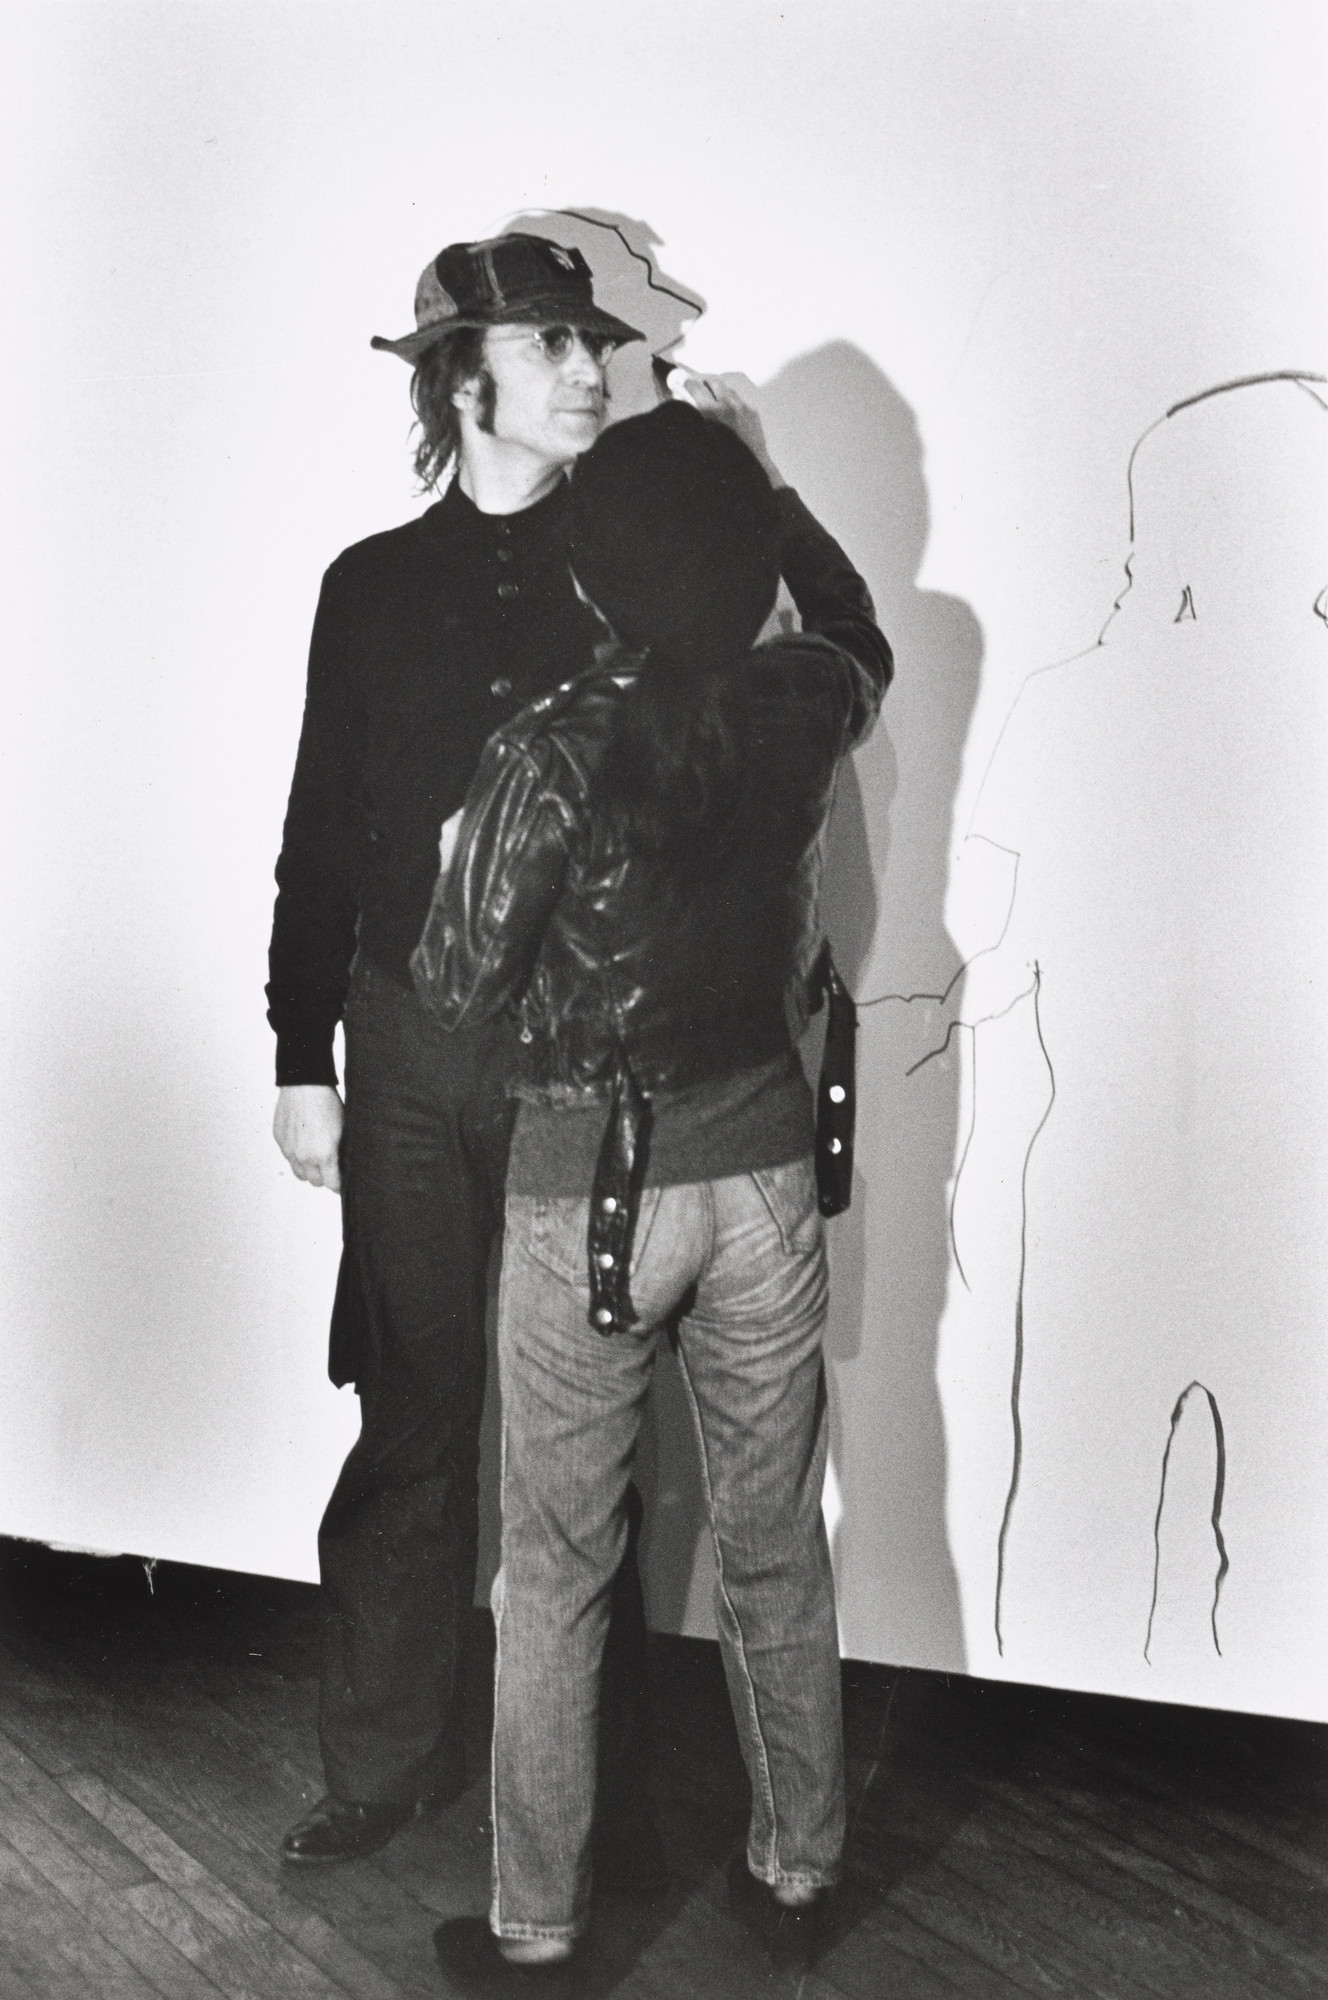 Fred W. McDarrah. Shadow Painting, performed during 8th Annual New York Avant Garde-Festival, 69th Regiment Armory, New York, November 19, 1971. 1971 (printed 2014)